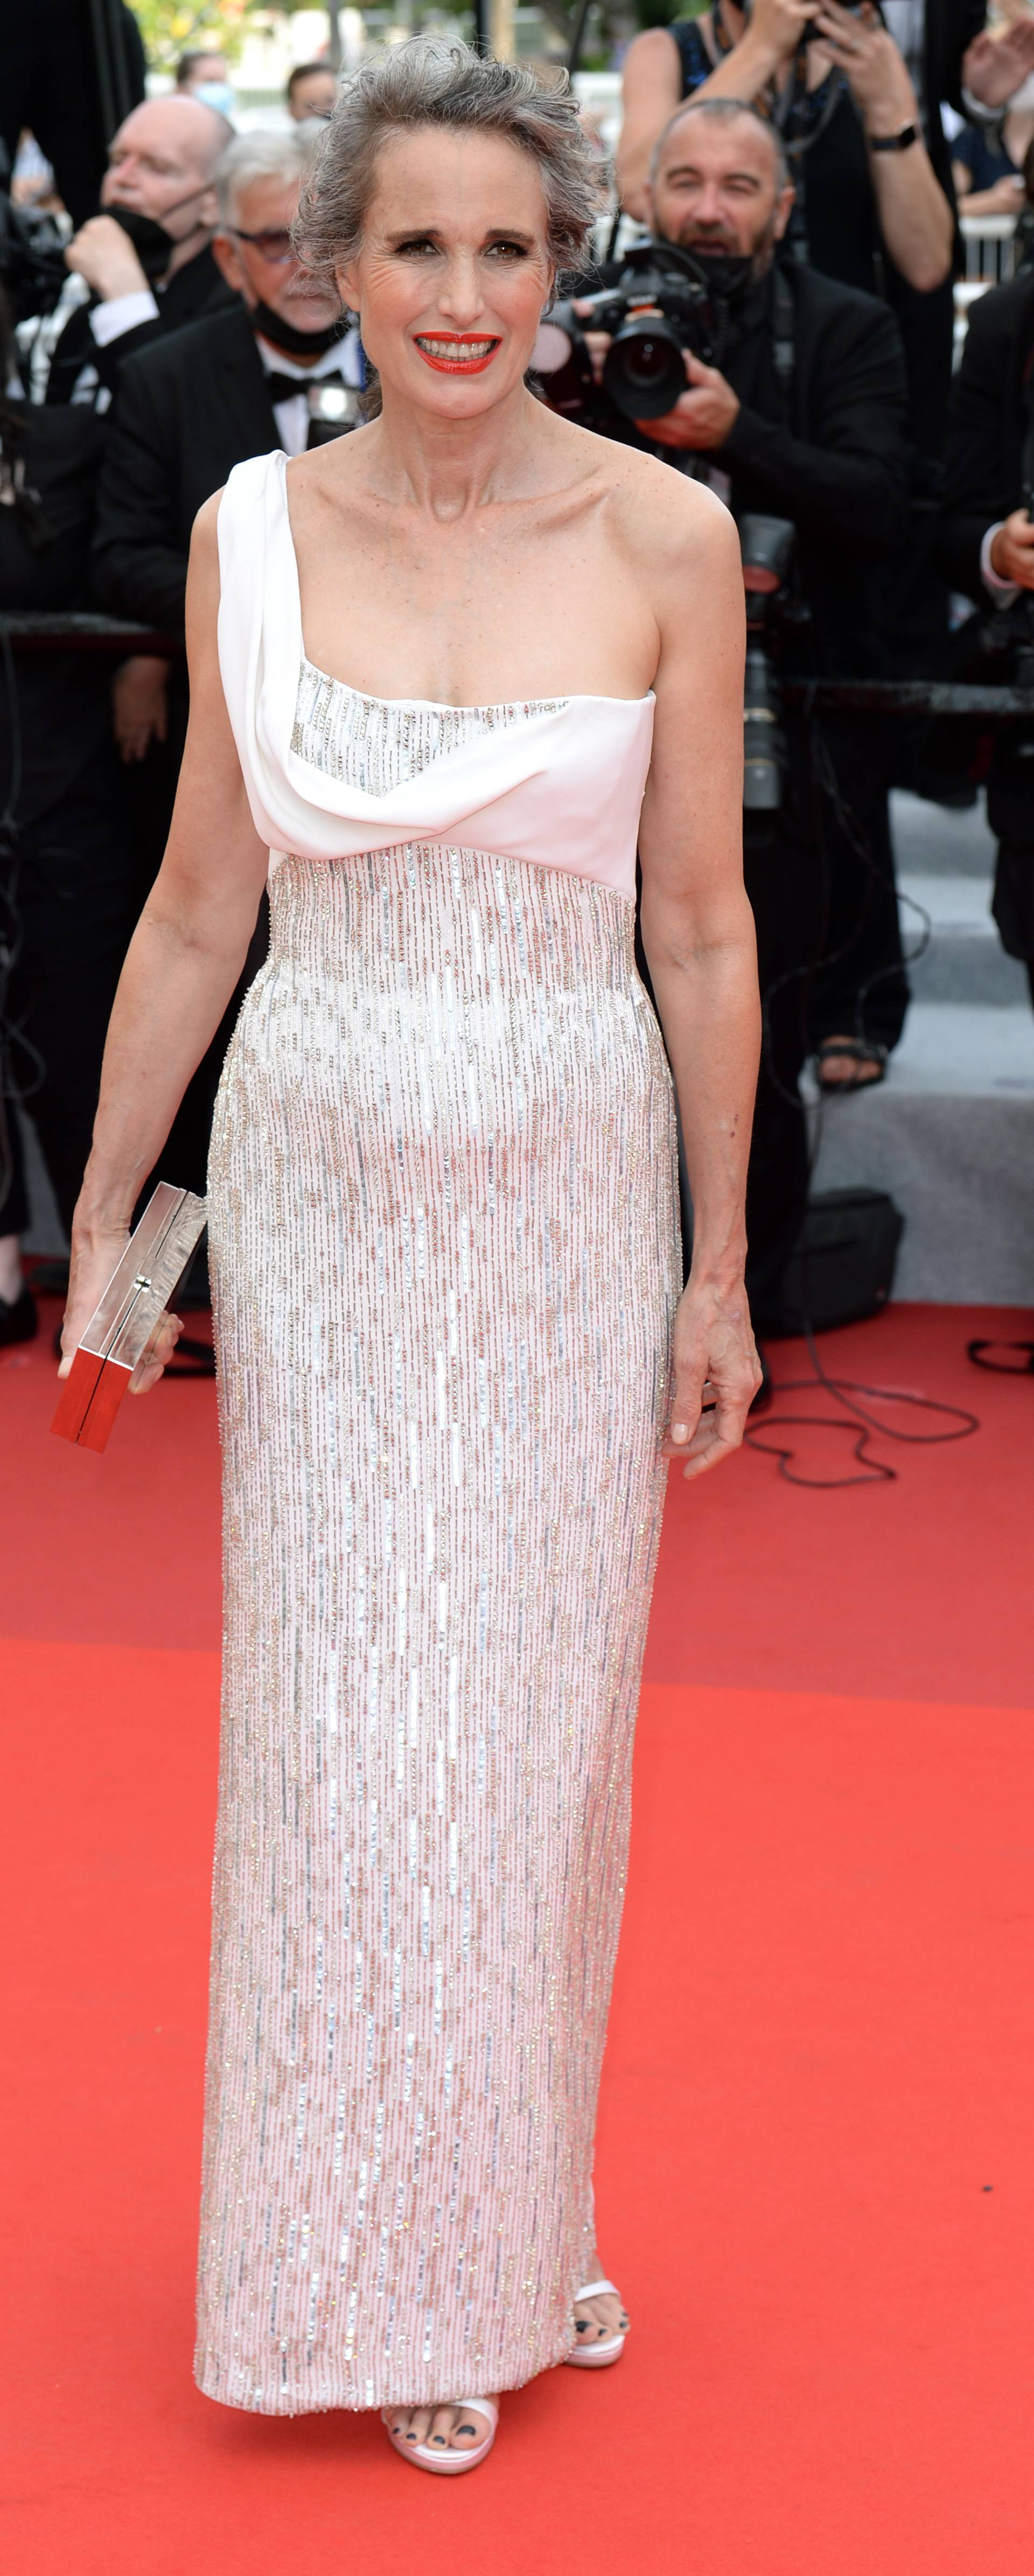 Everything Went Fine premiere, Cannes Film Festival